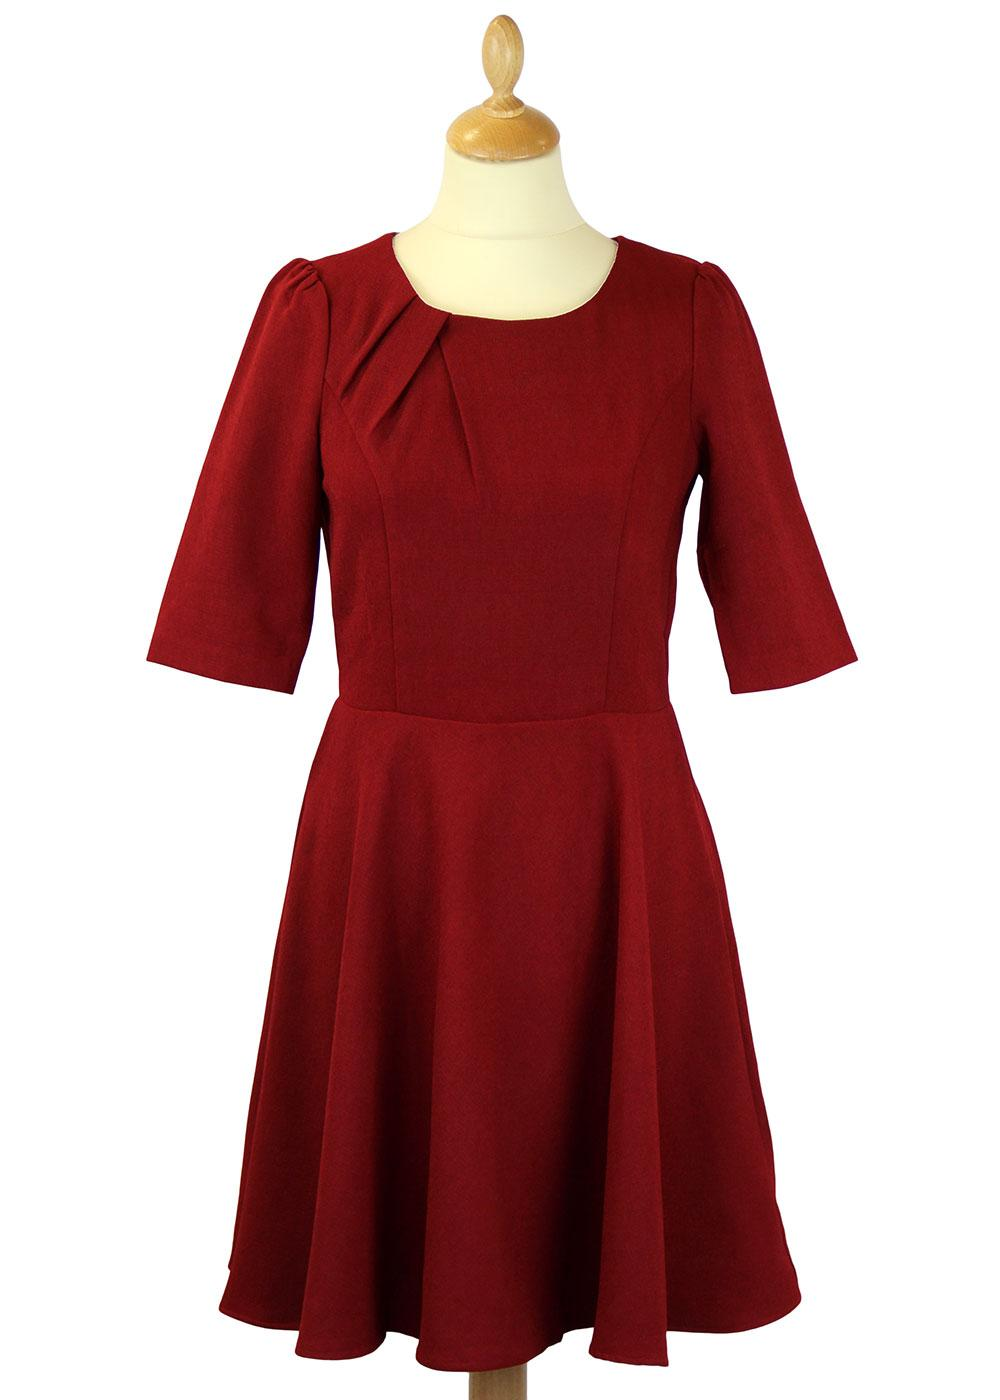 Audrey TRAFFIC PEOPLE Pleated Collar Flared Dress